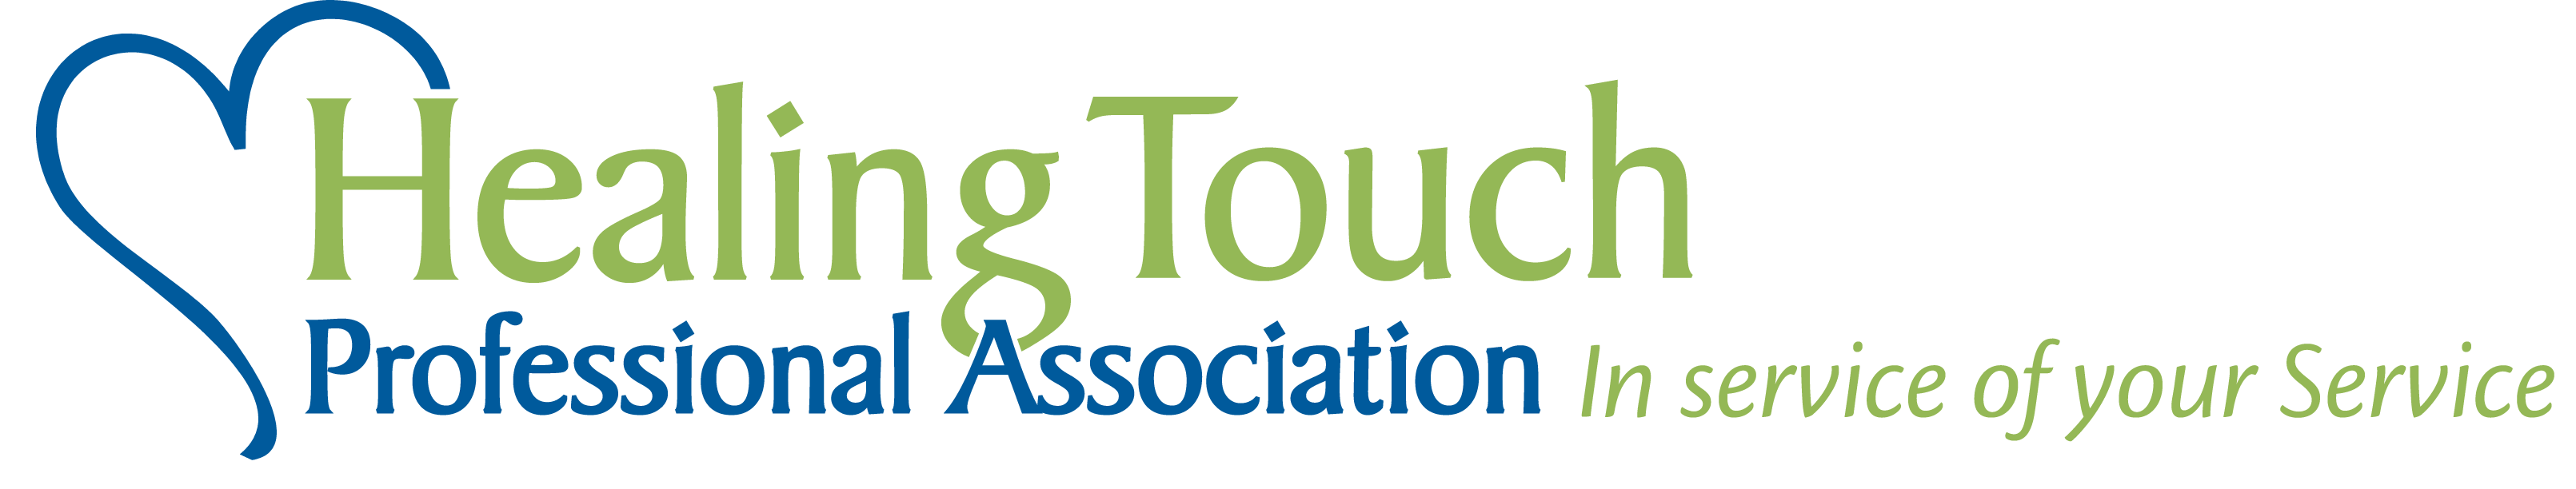 home healing touch professional association healing touch professional association htpa